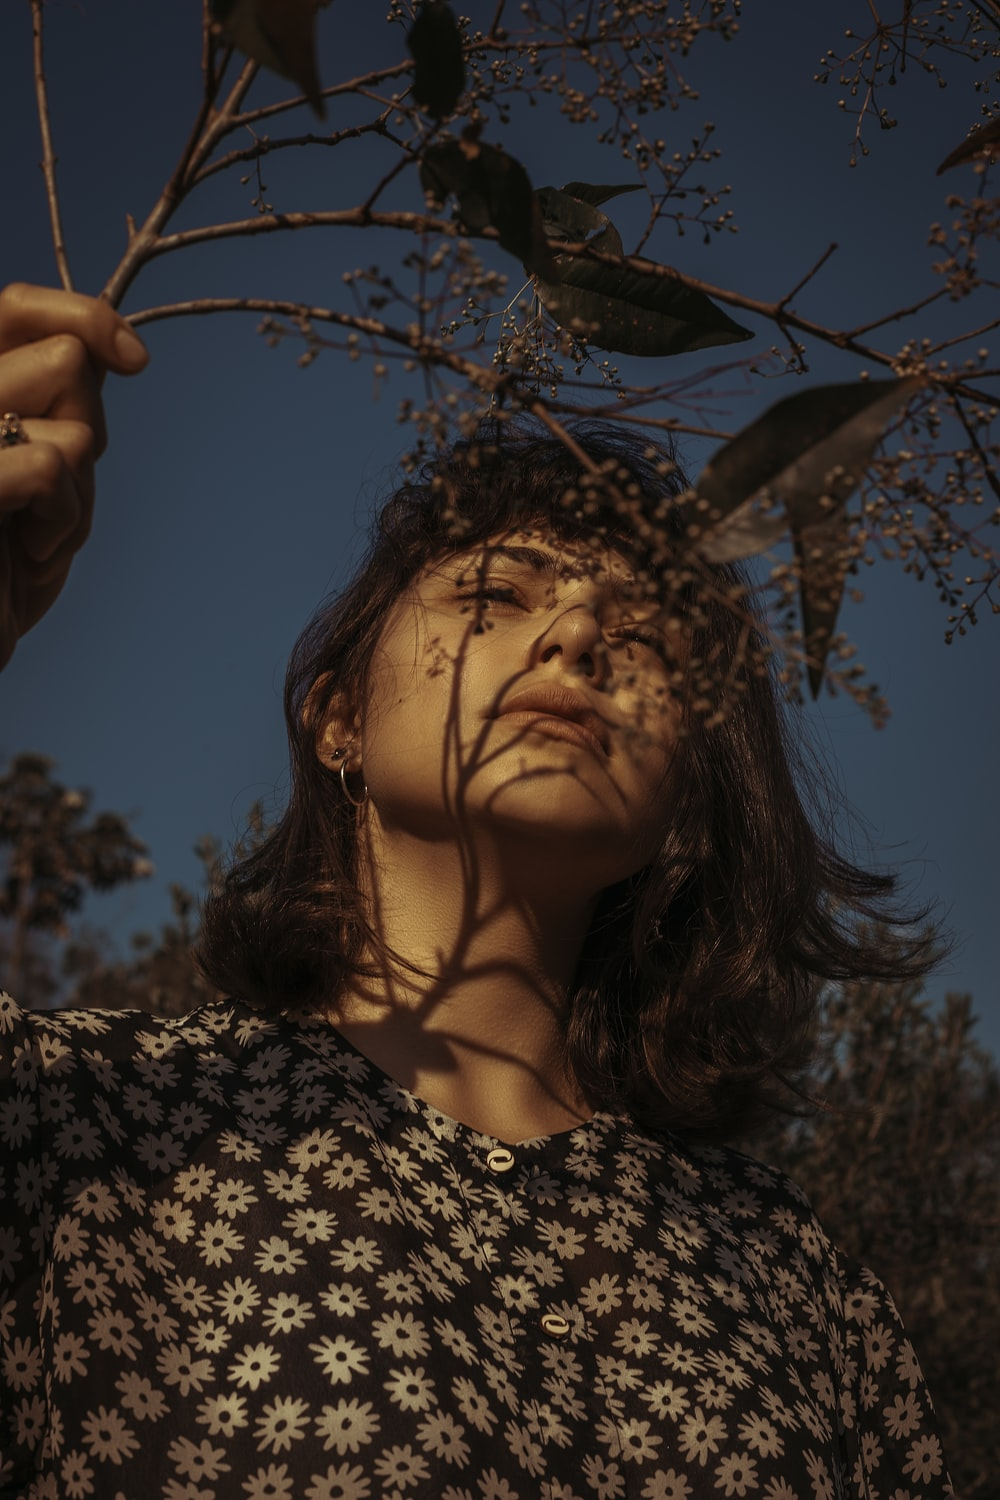 low-angle photo of woman holding tree wig